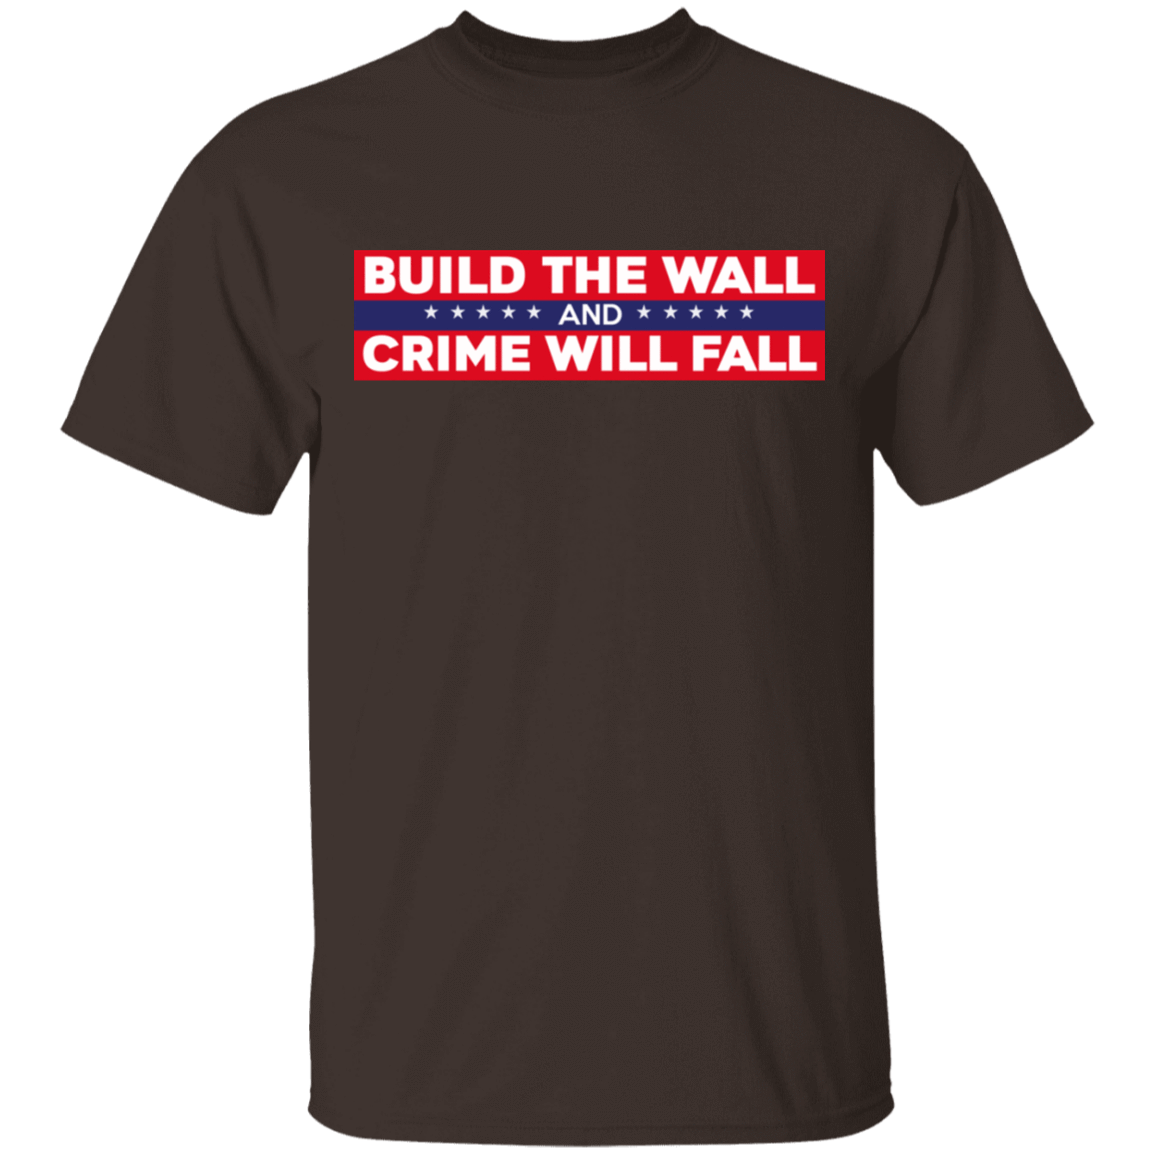 Build The Wall And Crime Will Fall Bumper T-Shirts, Hoodies, Tank 22-2283-80184187-12087 - Tee Ript